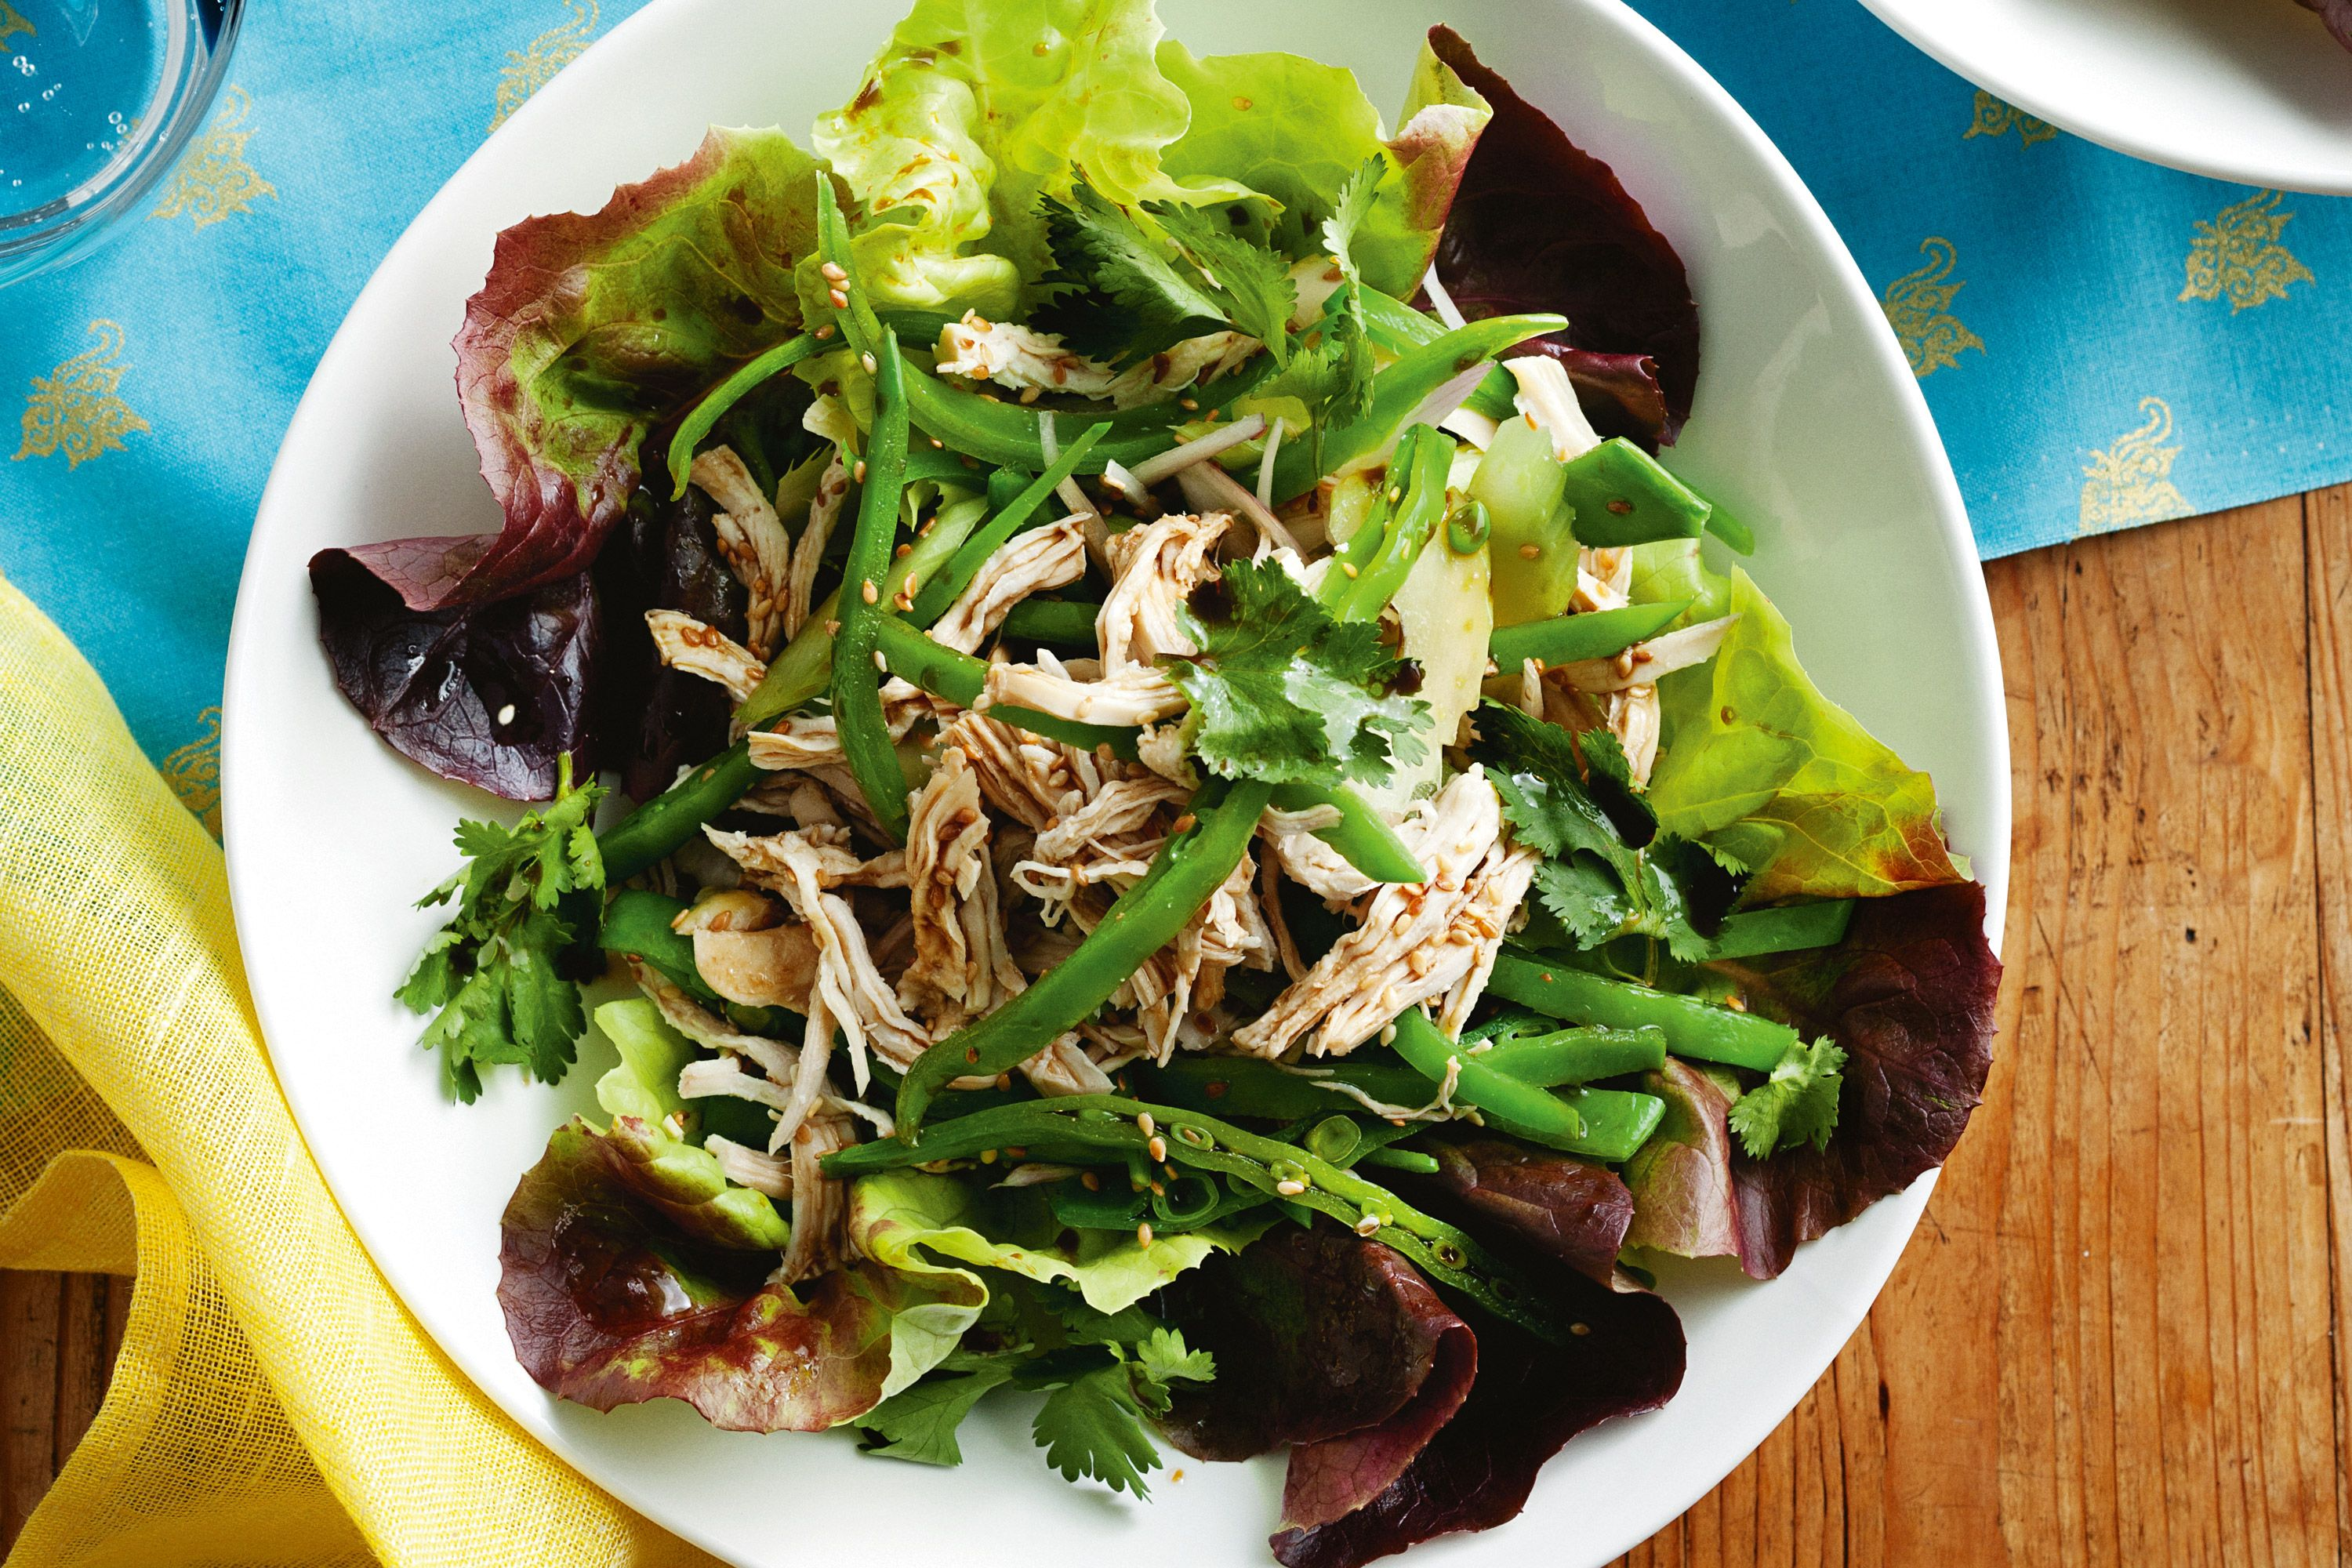 Fragrant ginger adds a zing to poached chicken for a super healthy salad.